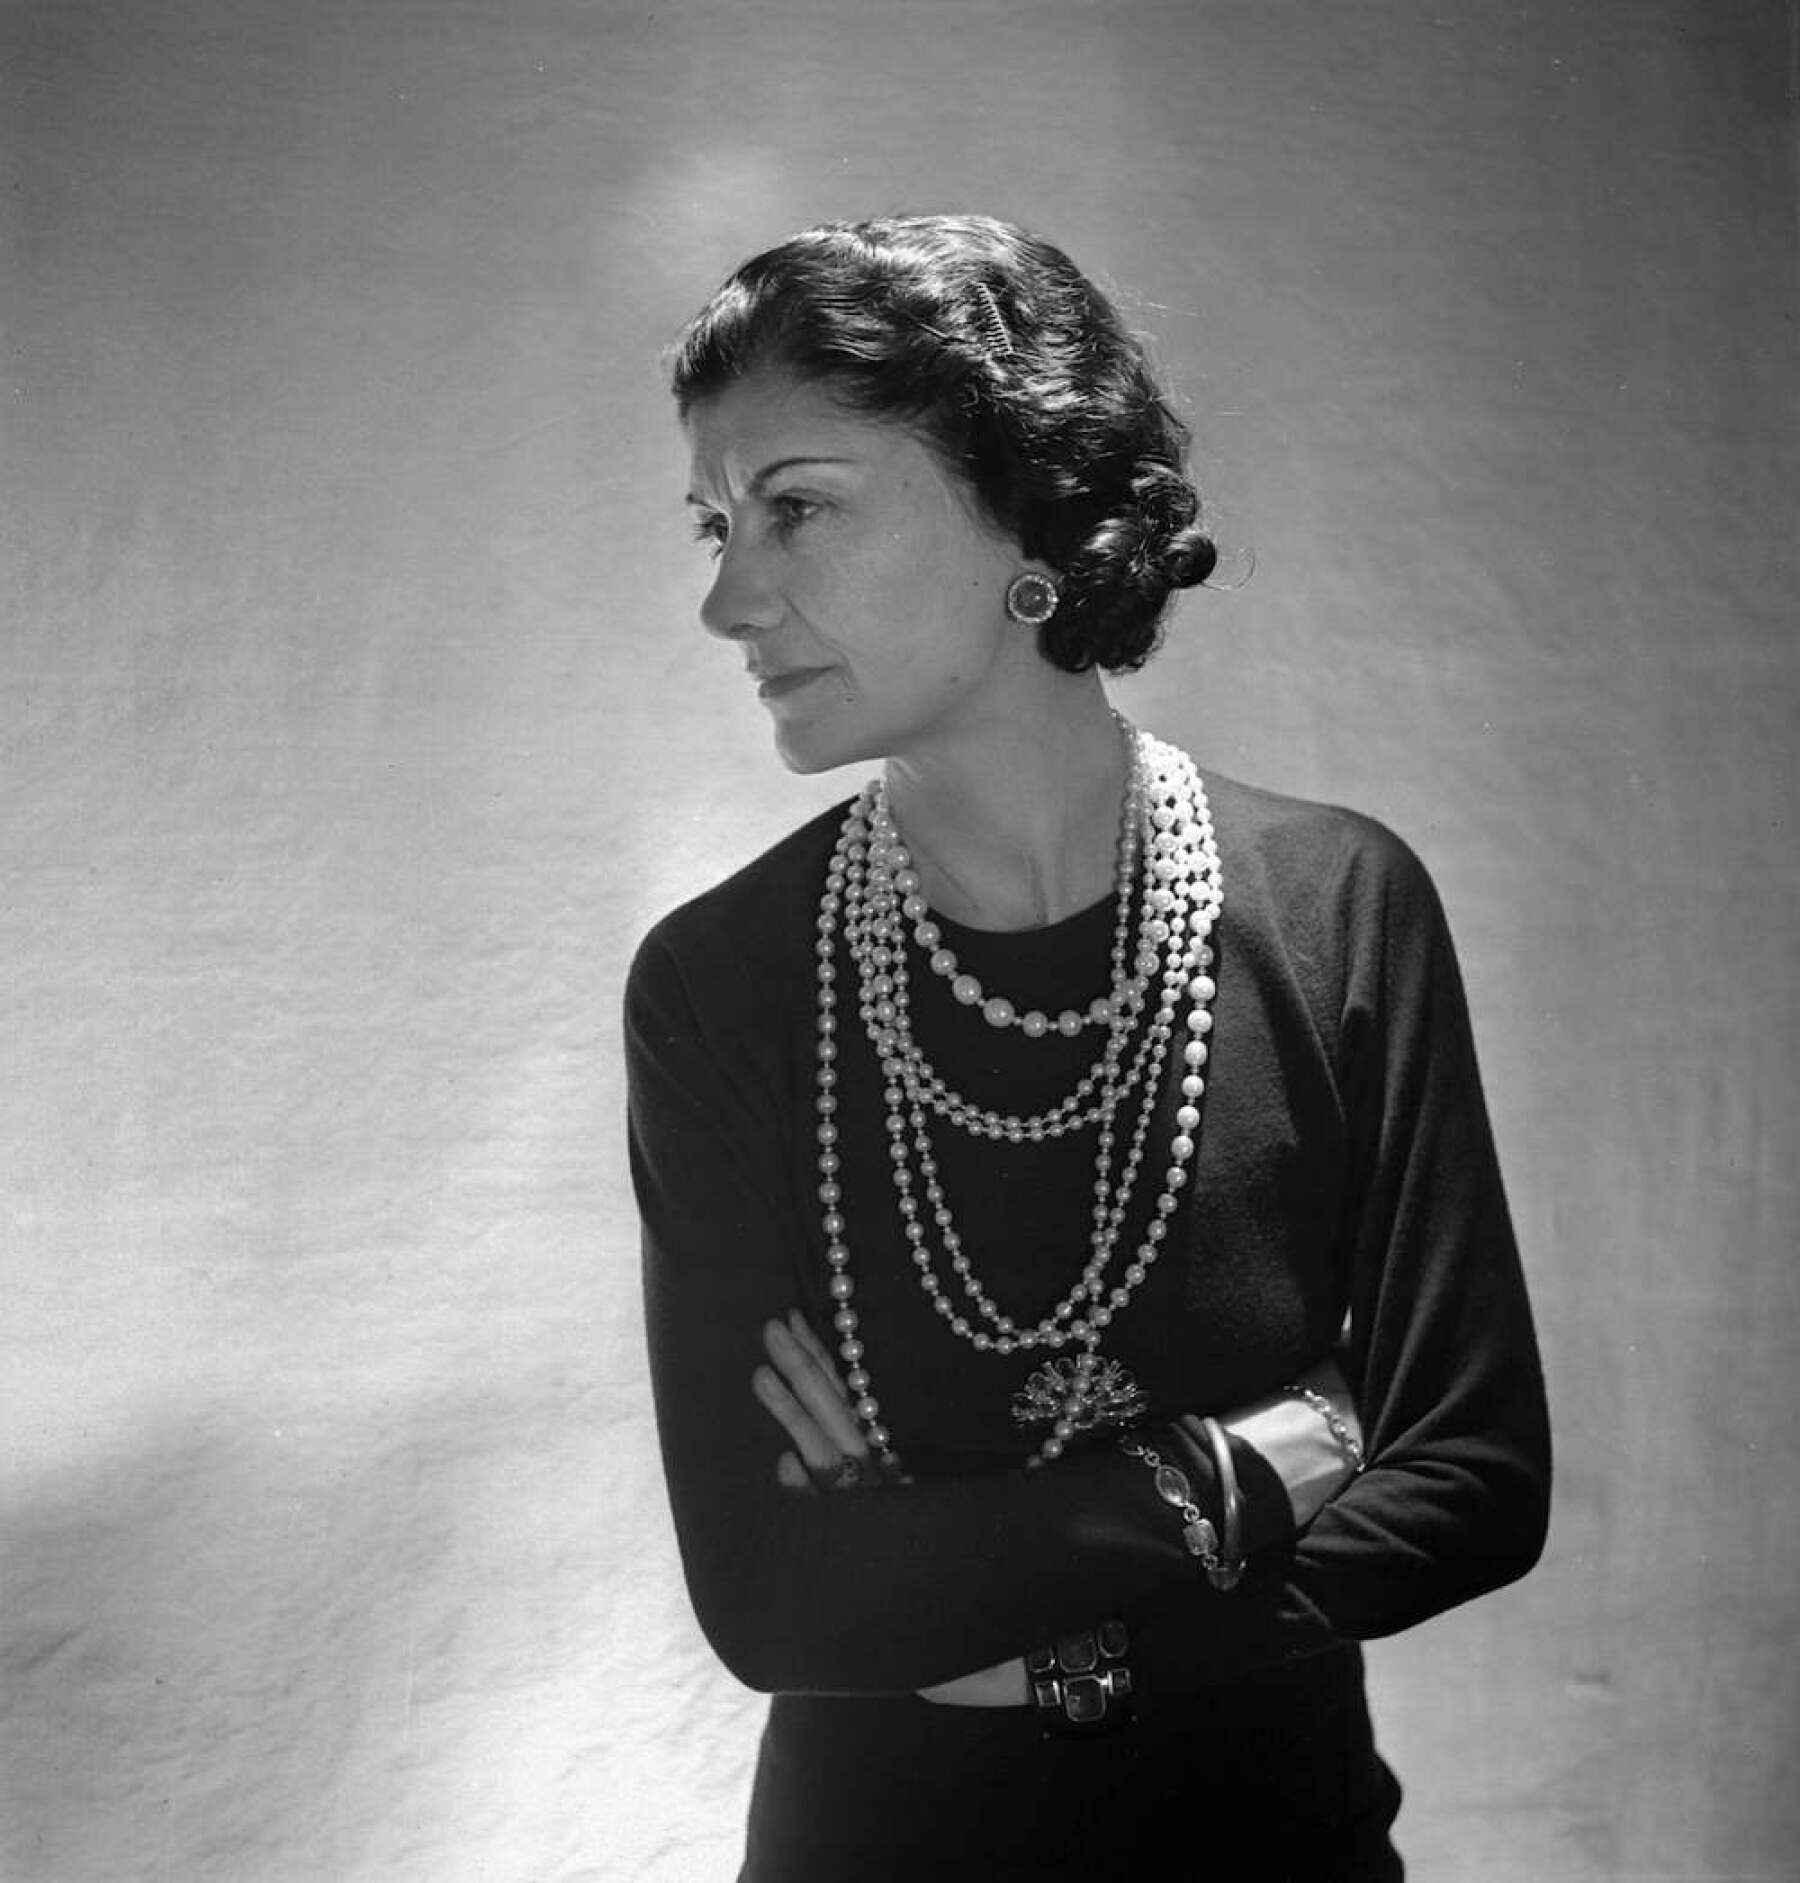 Coco Chanel, French couturier. Paris, 1936. LIP-69